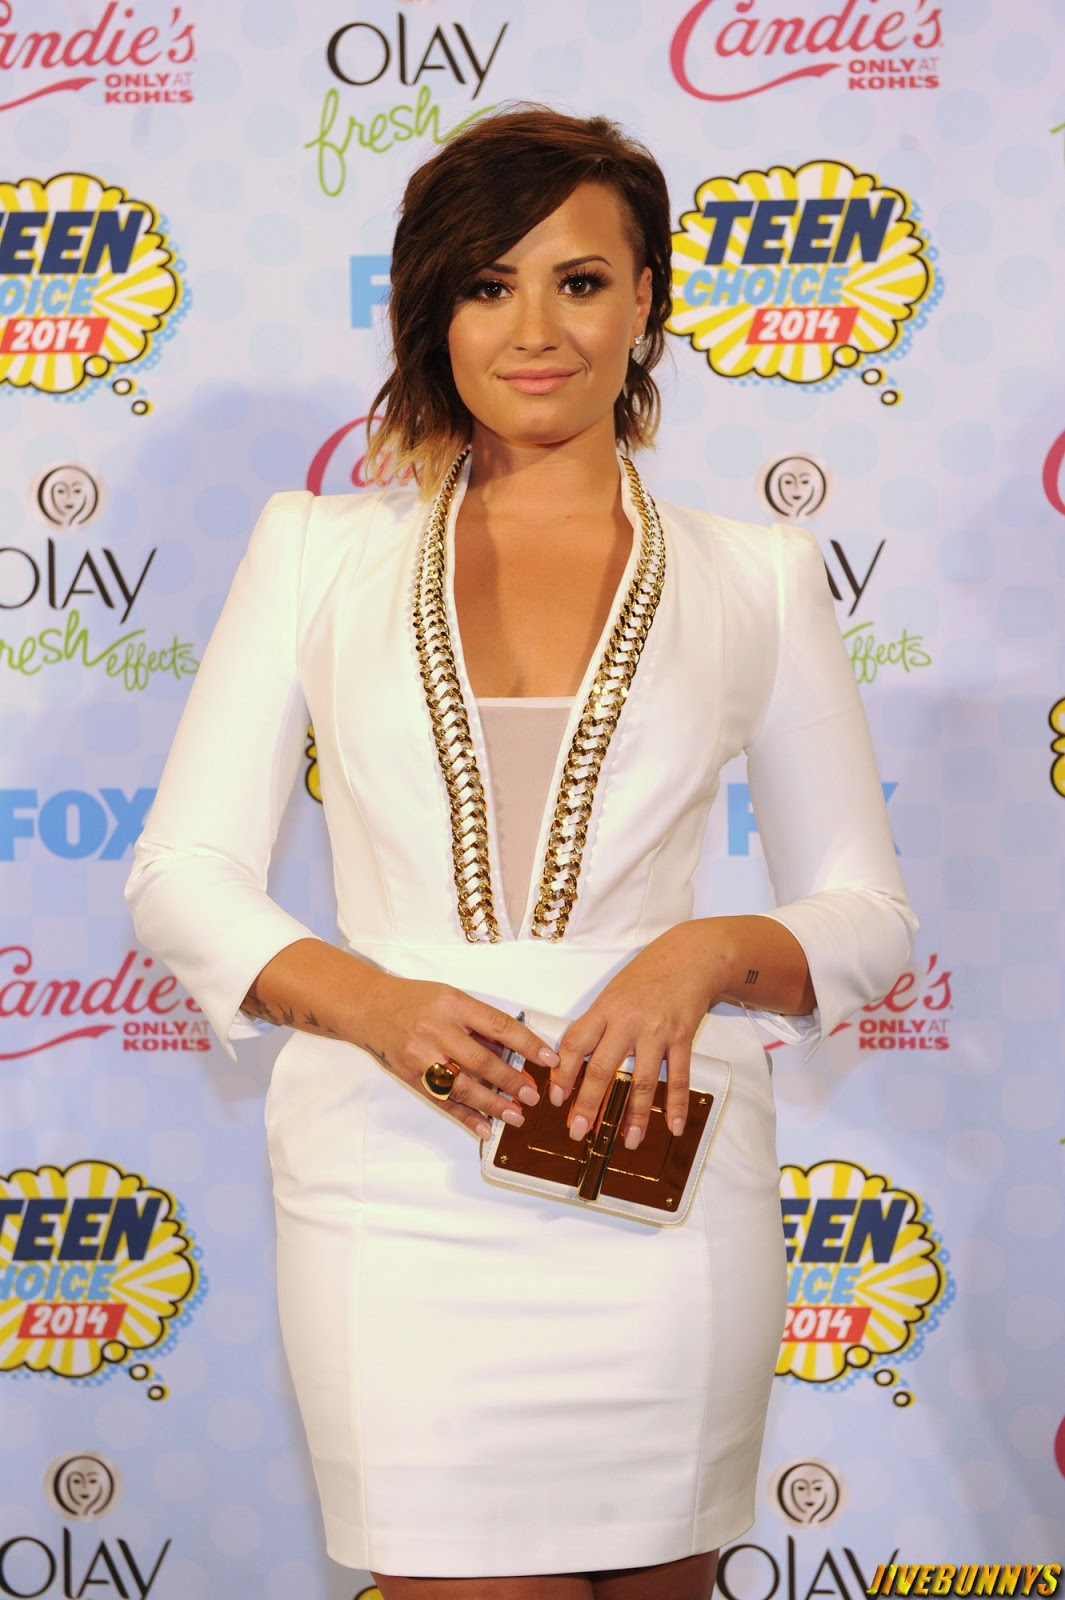 2014 Teen Choice Awards in LA 8/10/14